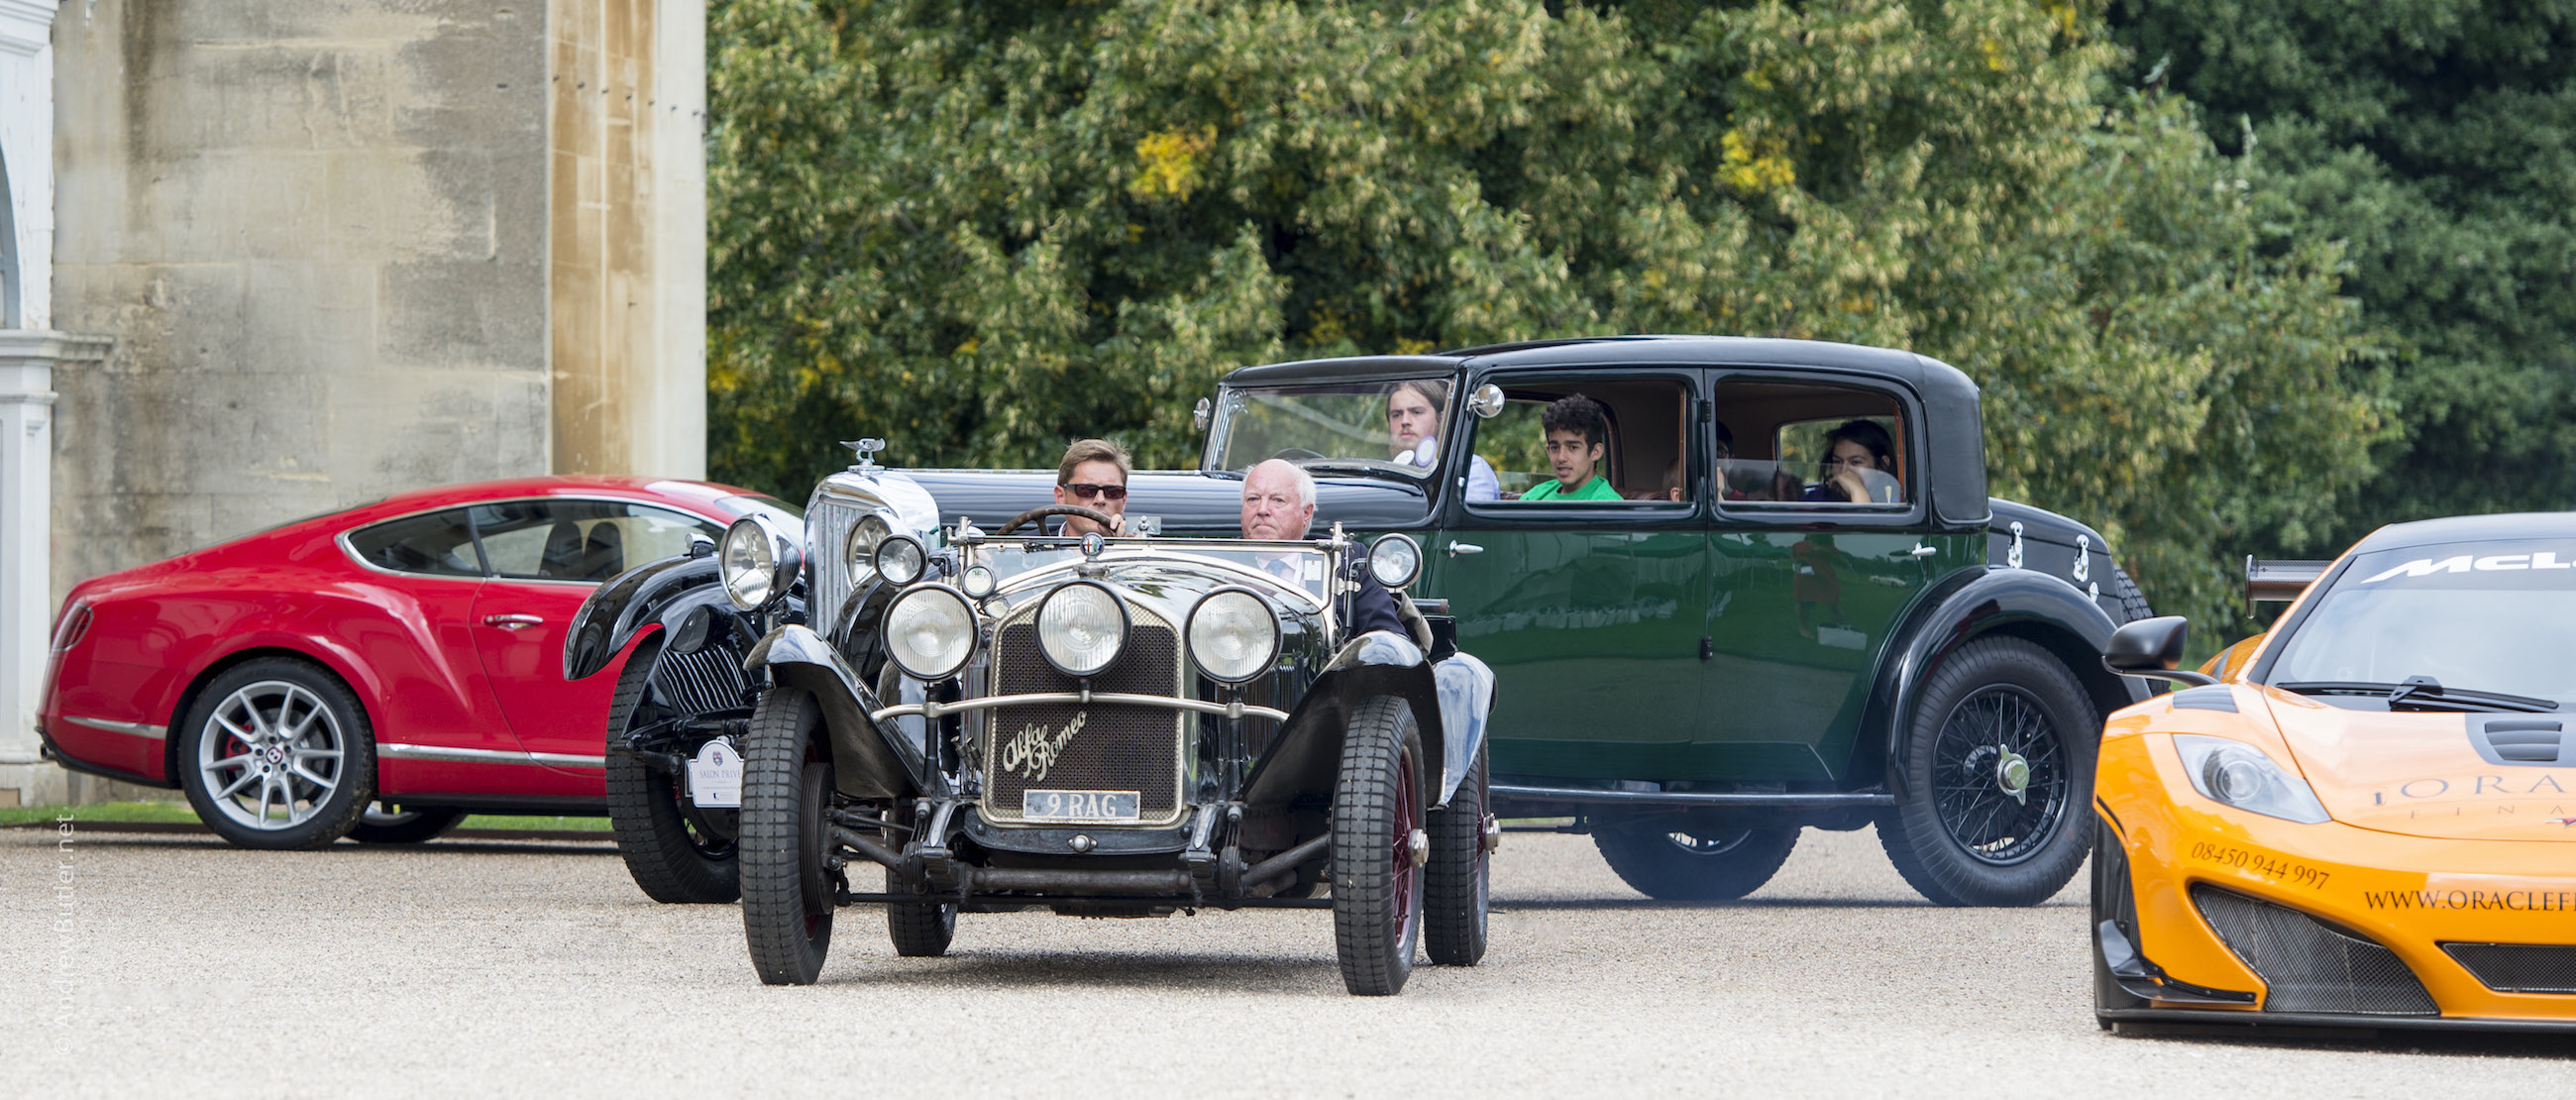 Salon Privé 2014 photography by Andrew Butler Exeter Devon